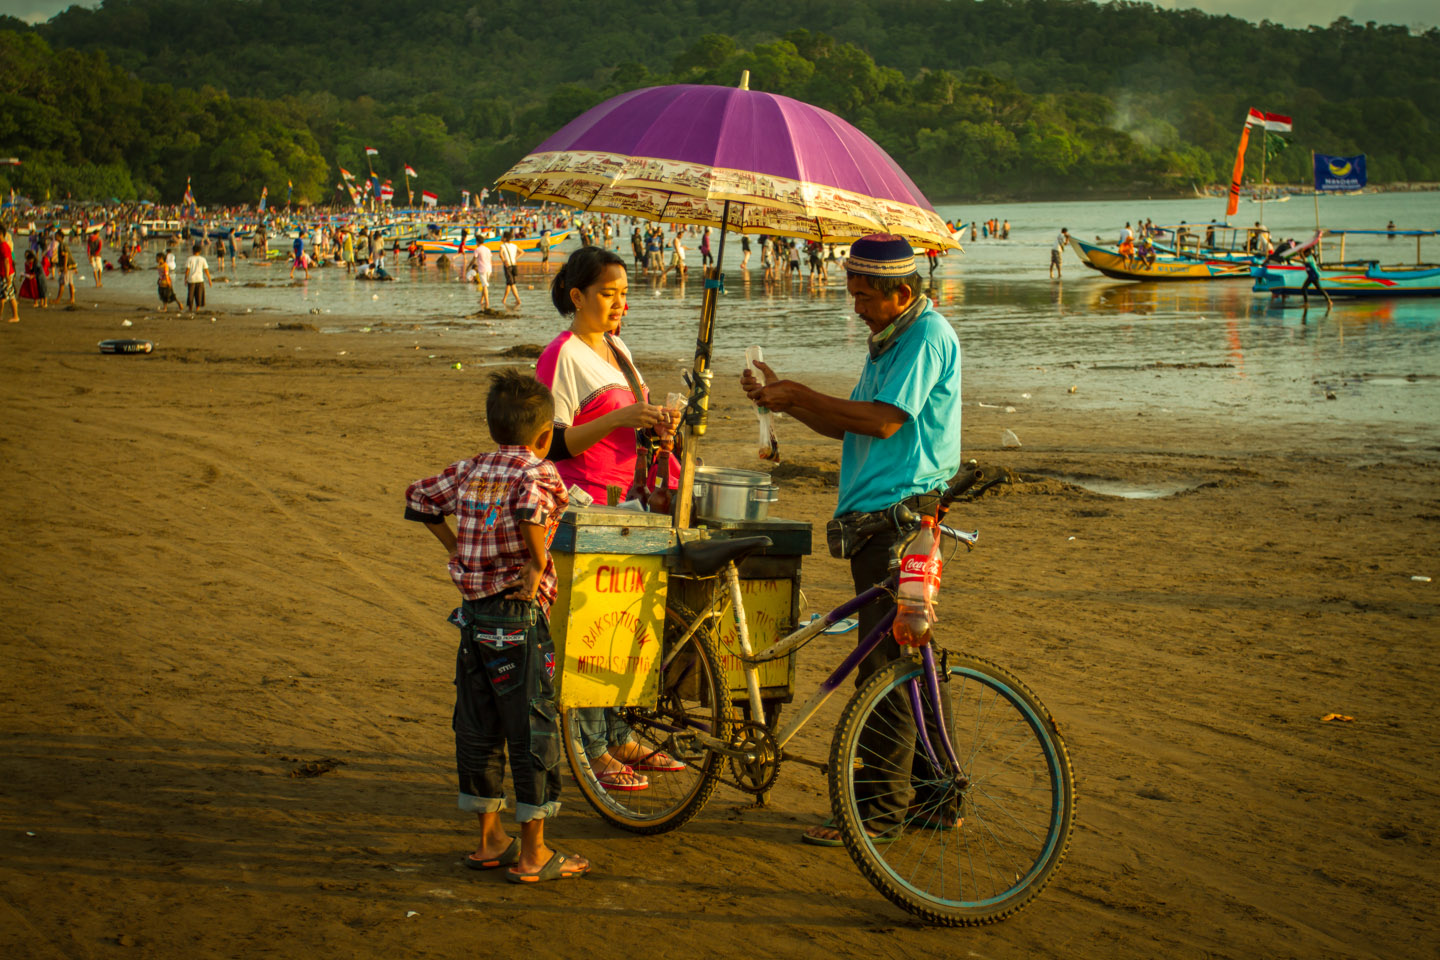 Bicycle selling Mie Bakso at Pangandaran beach Java Indonesia during Ramadan Idul Fitri 2013 Indonesien